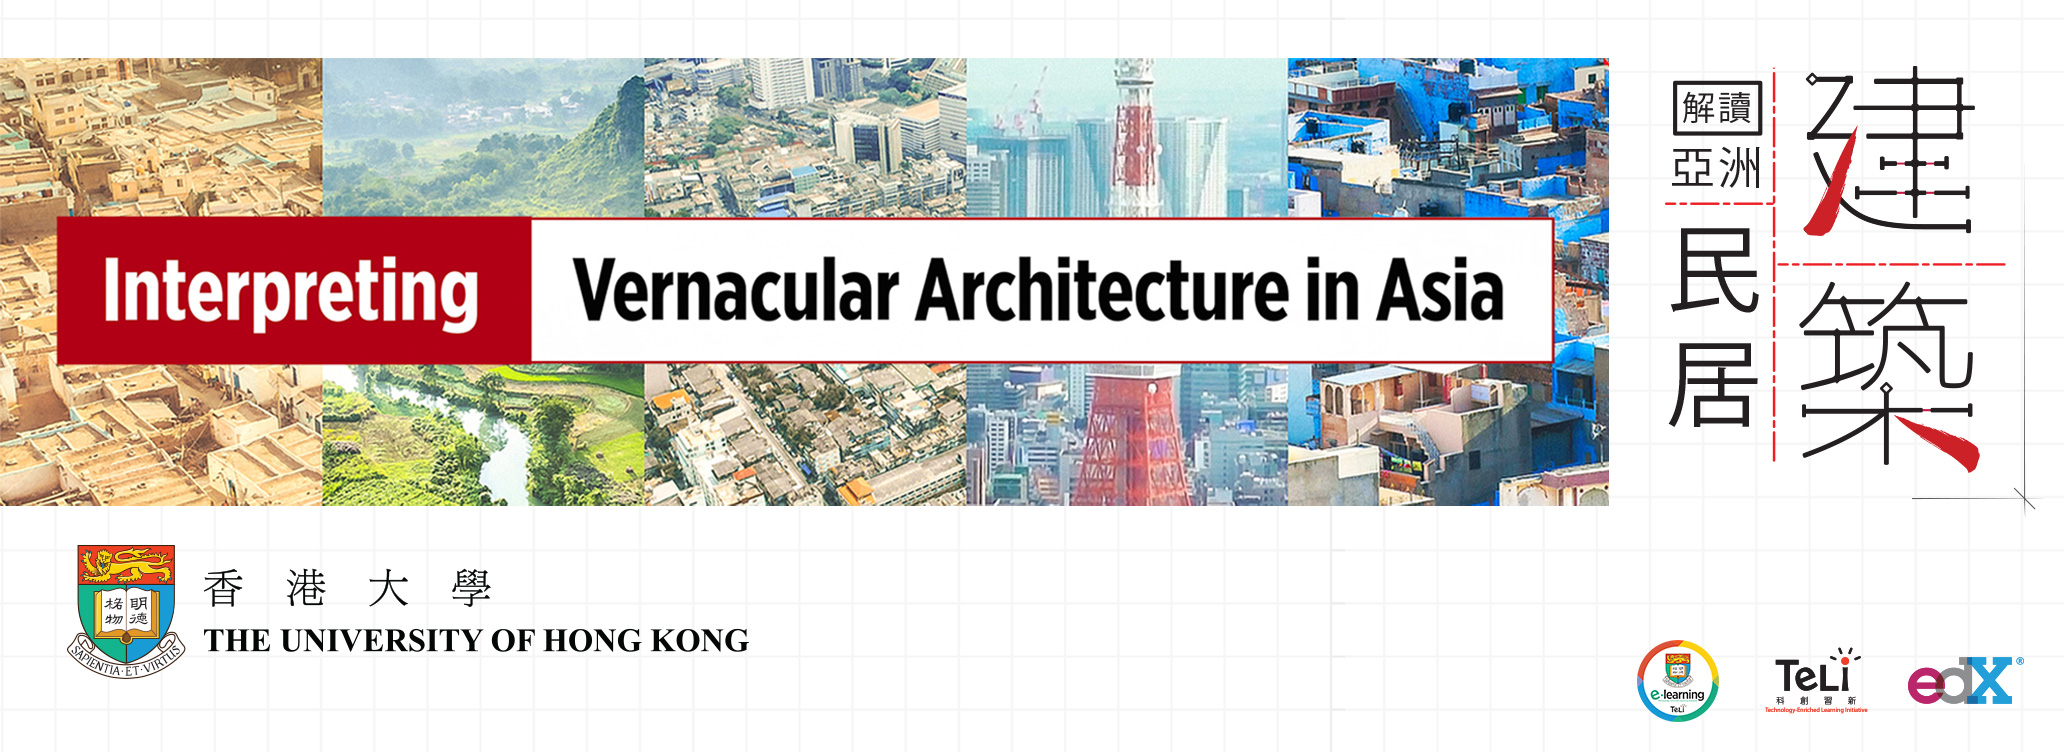 Interpreting Vernacular Architecture in Asia